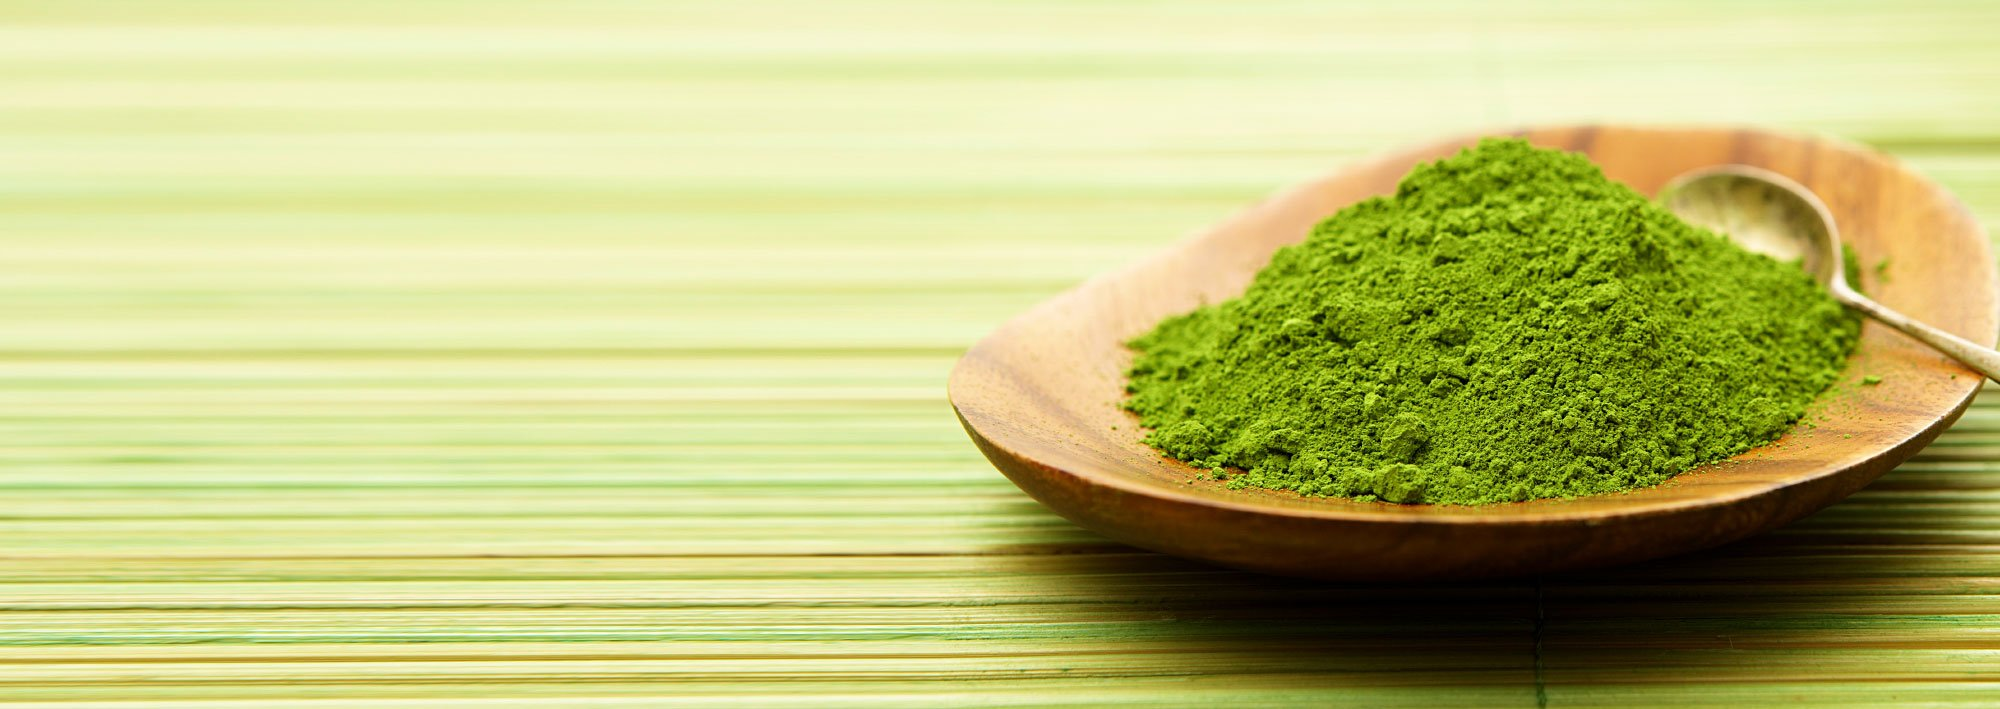 6 Best Japanese Green Tea & Matcha Brands in Japan